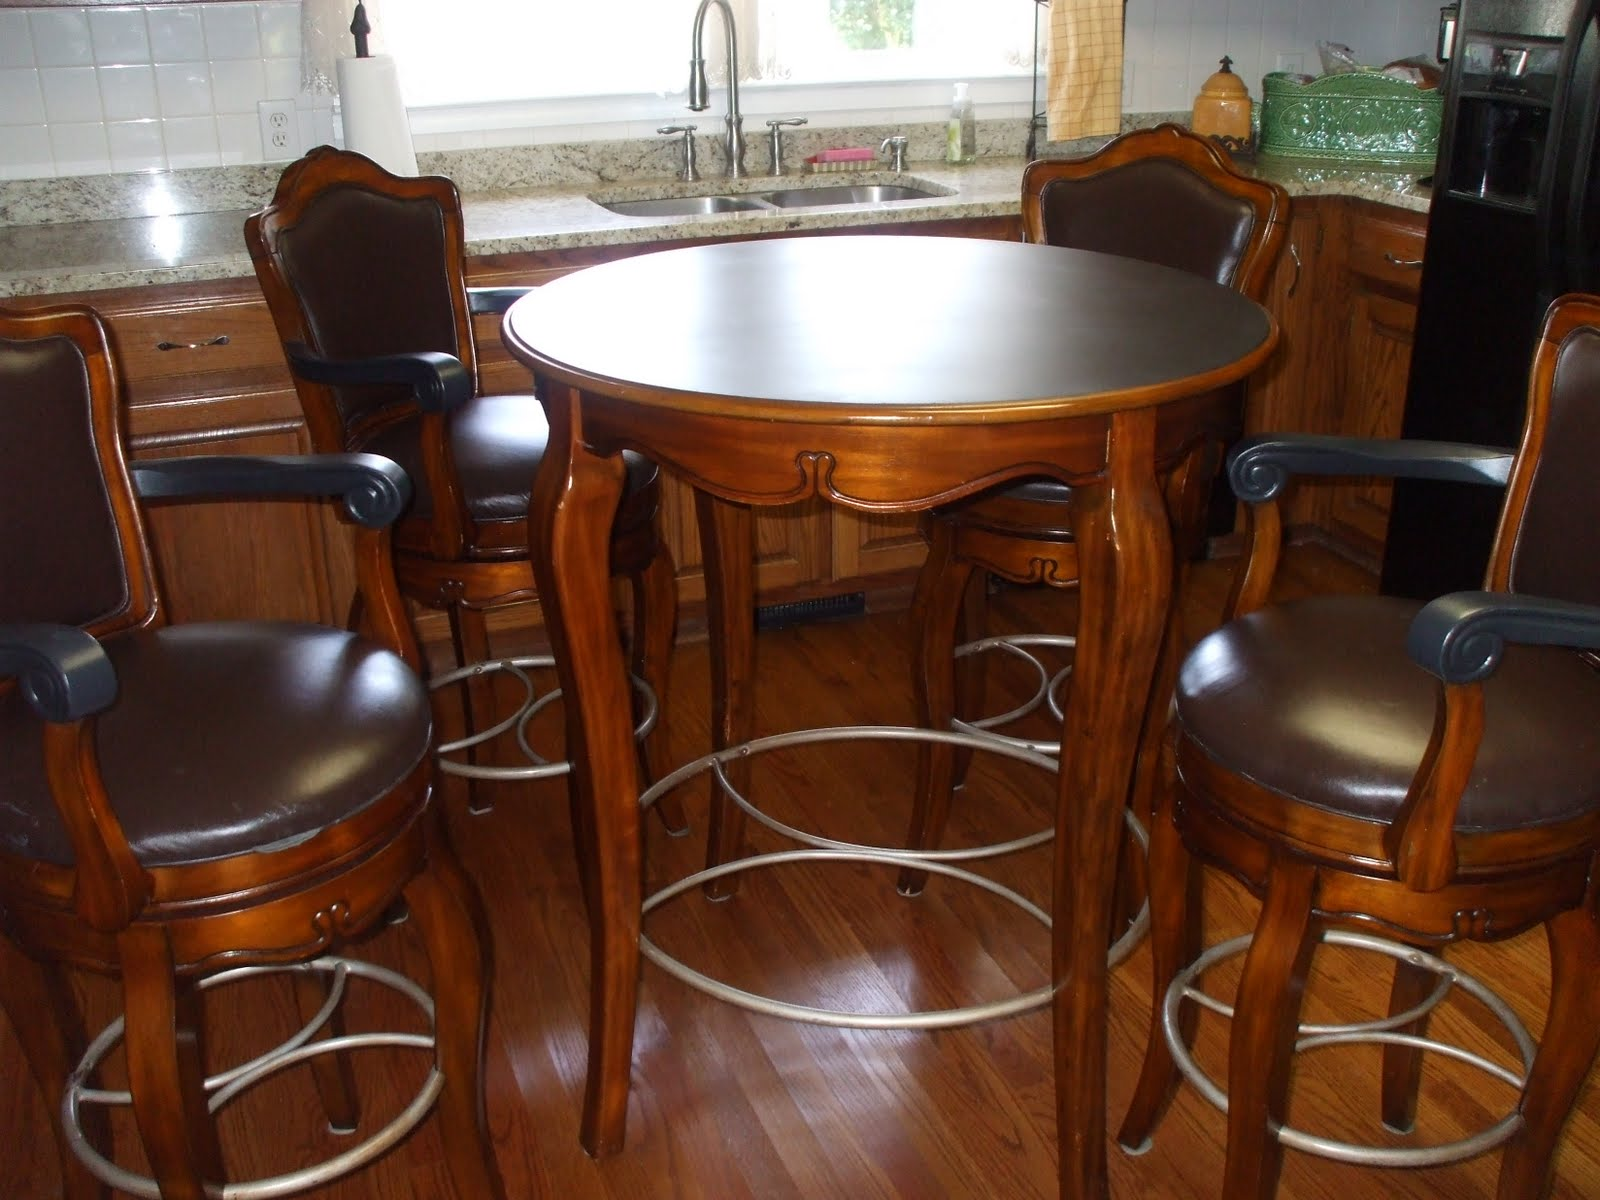 Slightly used Bistro table and